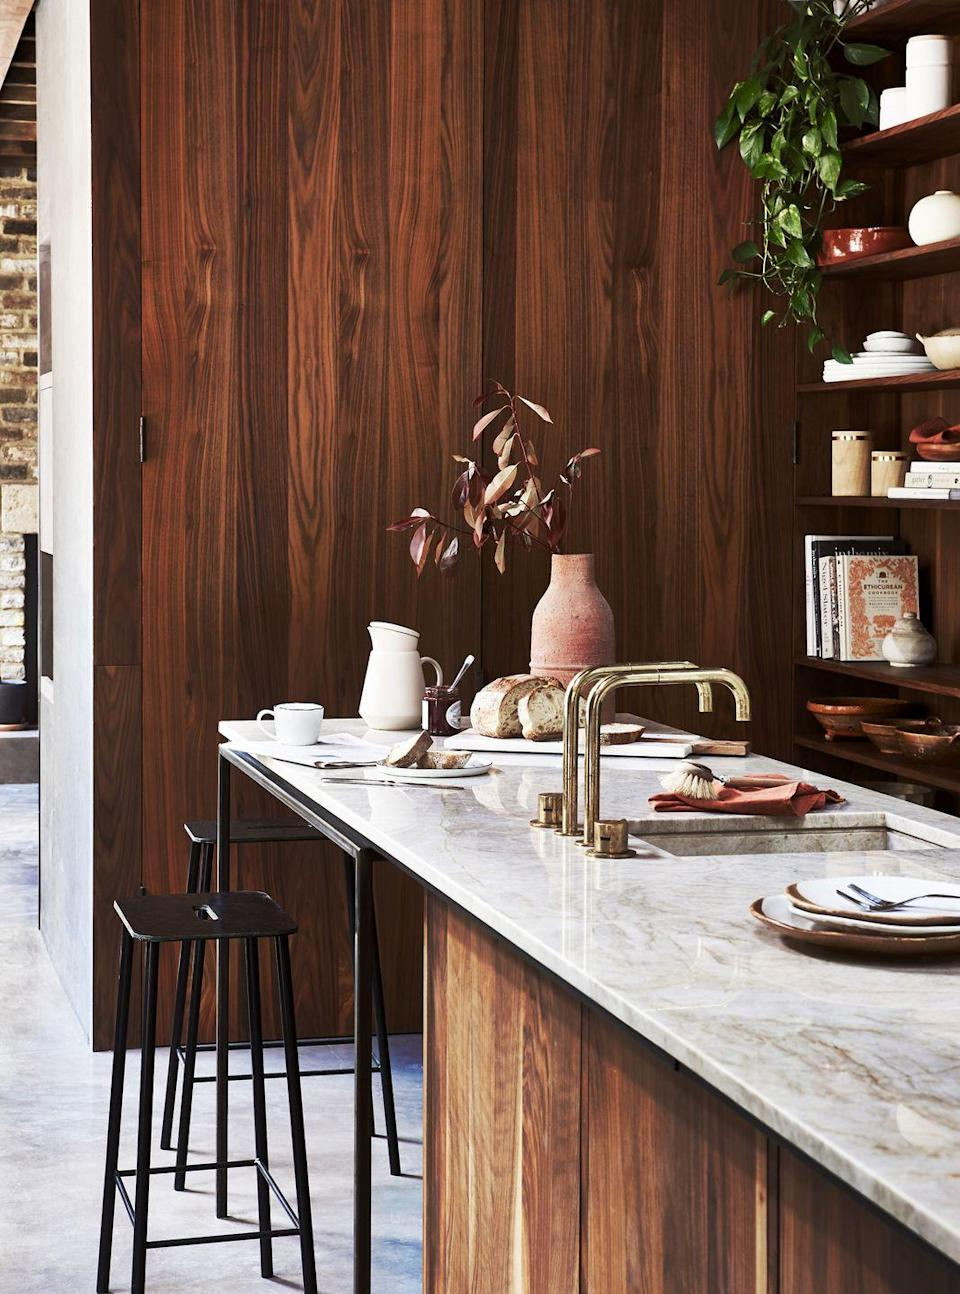 """<p>Wondering what surface to use for your kitchen island? Marble is best suited for a classic kitchen where work surfaces are respected with care, while quartz and granite used in their entirety work well to give a seamless finish. </p><p>'Larger islands may require a joint, so there is the opportunity to experiment with the design and choose a complementary material, colour or thickness,' advises Graeme. 'Adding timber elements such as chopping blocks to a breakfast bar can be a good way to subtly zone an island whilst also disguising the joints.'<br></p><p><strong>READ MORE</strong>: <a href=""""https://www.housebeautiful.com/uk/decorate/kitchen/a36556398/kitchen-worktops/"""" rel=""""nofollow noopener"""" target=""""_blank"""" data-ylk=""""slk:Everything you need to know about kitchen worktops"""" class=""""link rapid-noclick-resp"""">Everything you need to know about kitchen worktops</a> <br></p>"""